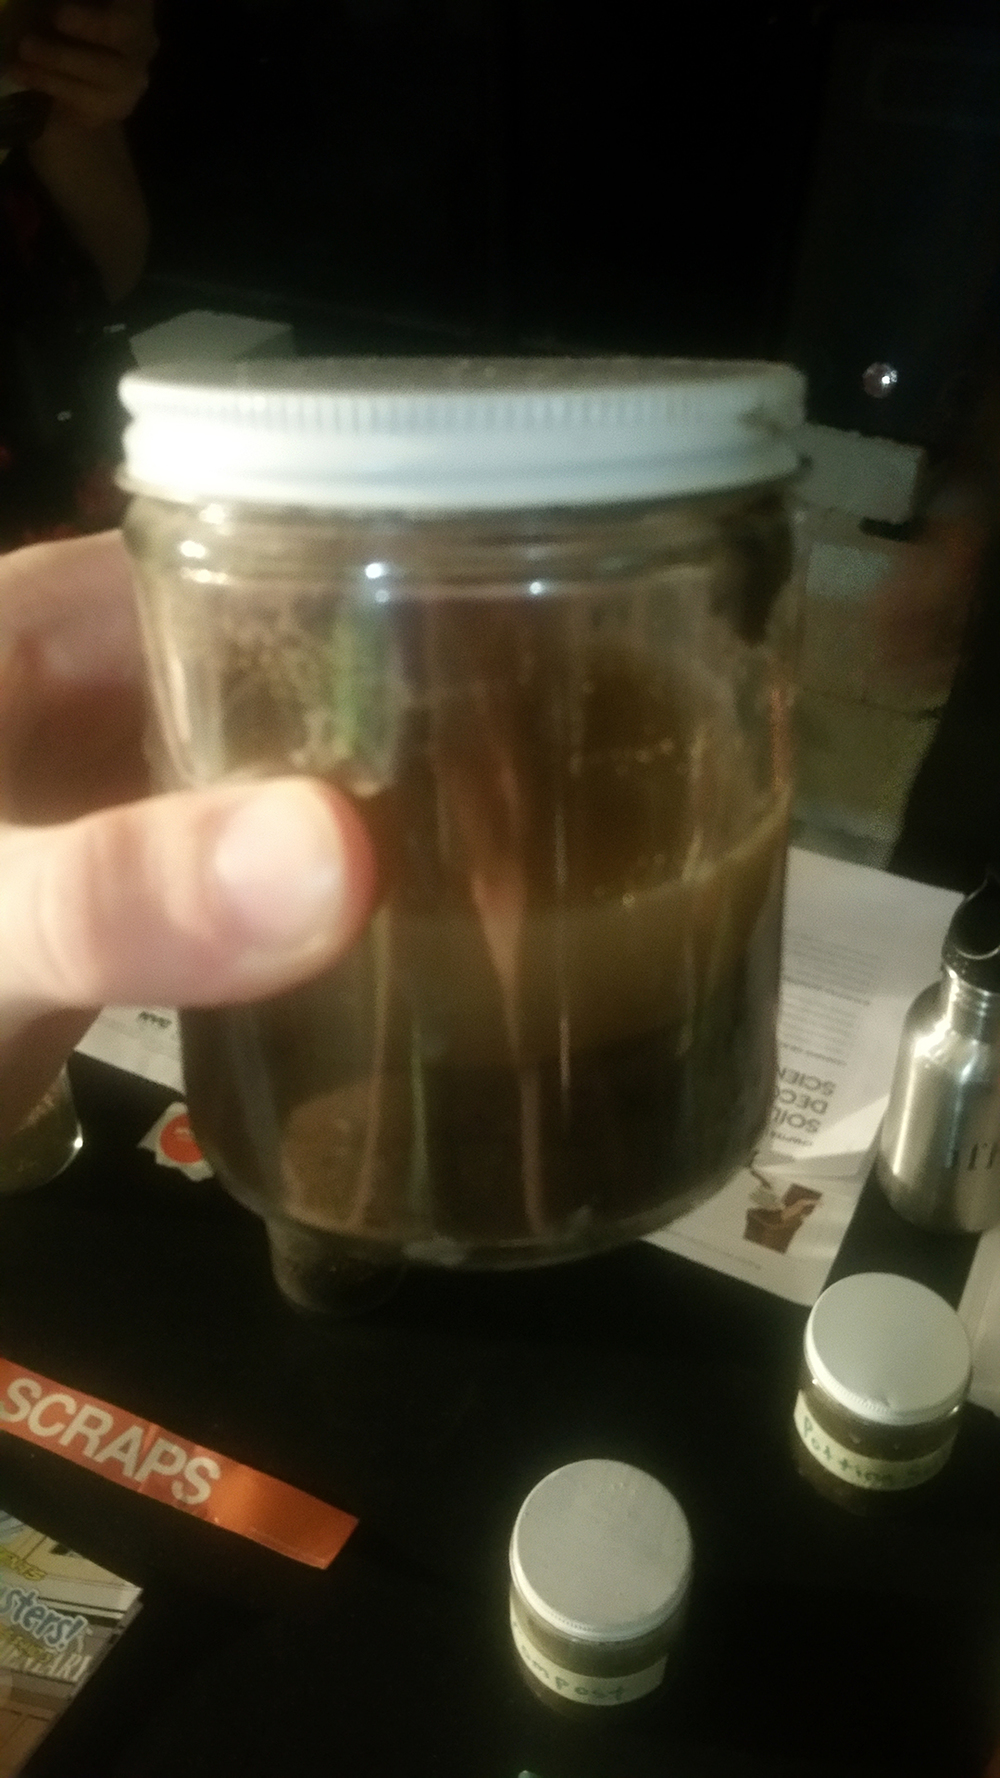 Soil Composition Test jar